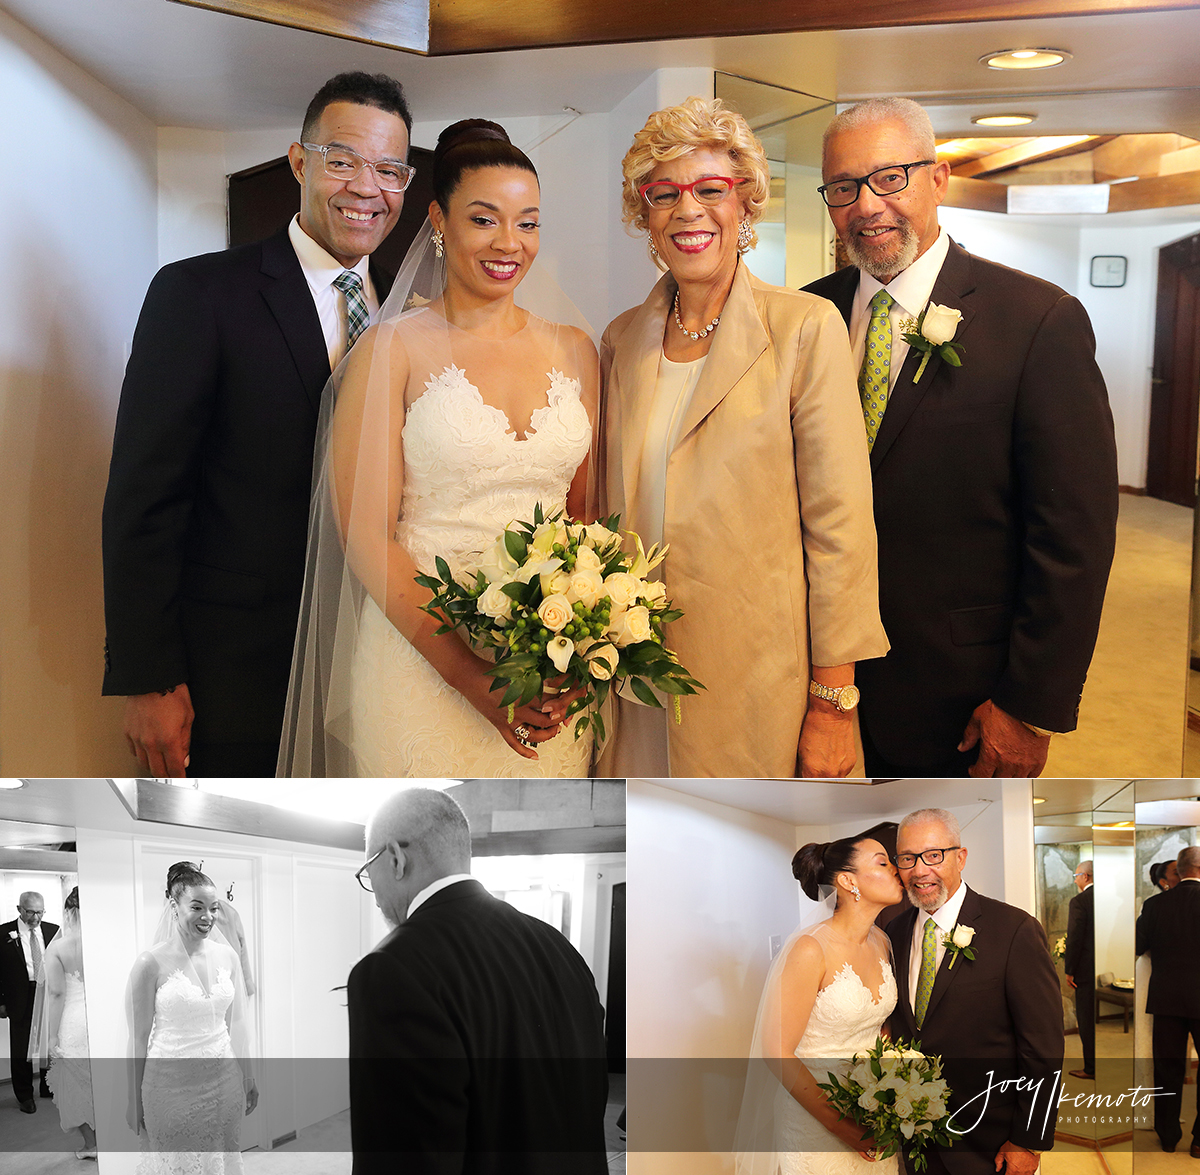 wayfarers-chapel-and-marsel-terranea-resort-wedding_0007_blog-collage-1477527615330